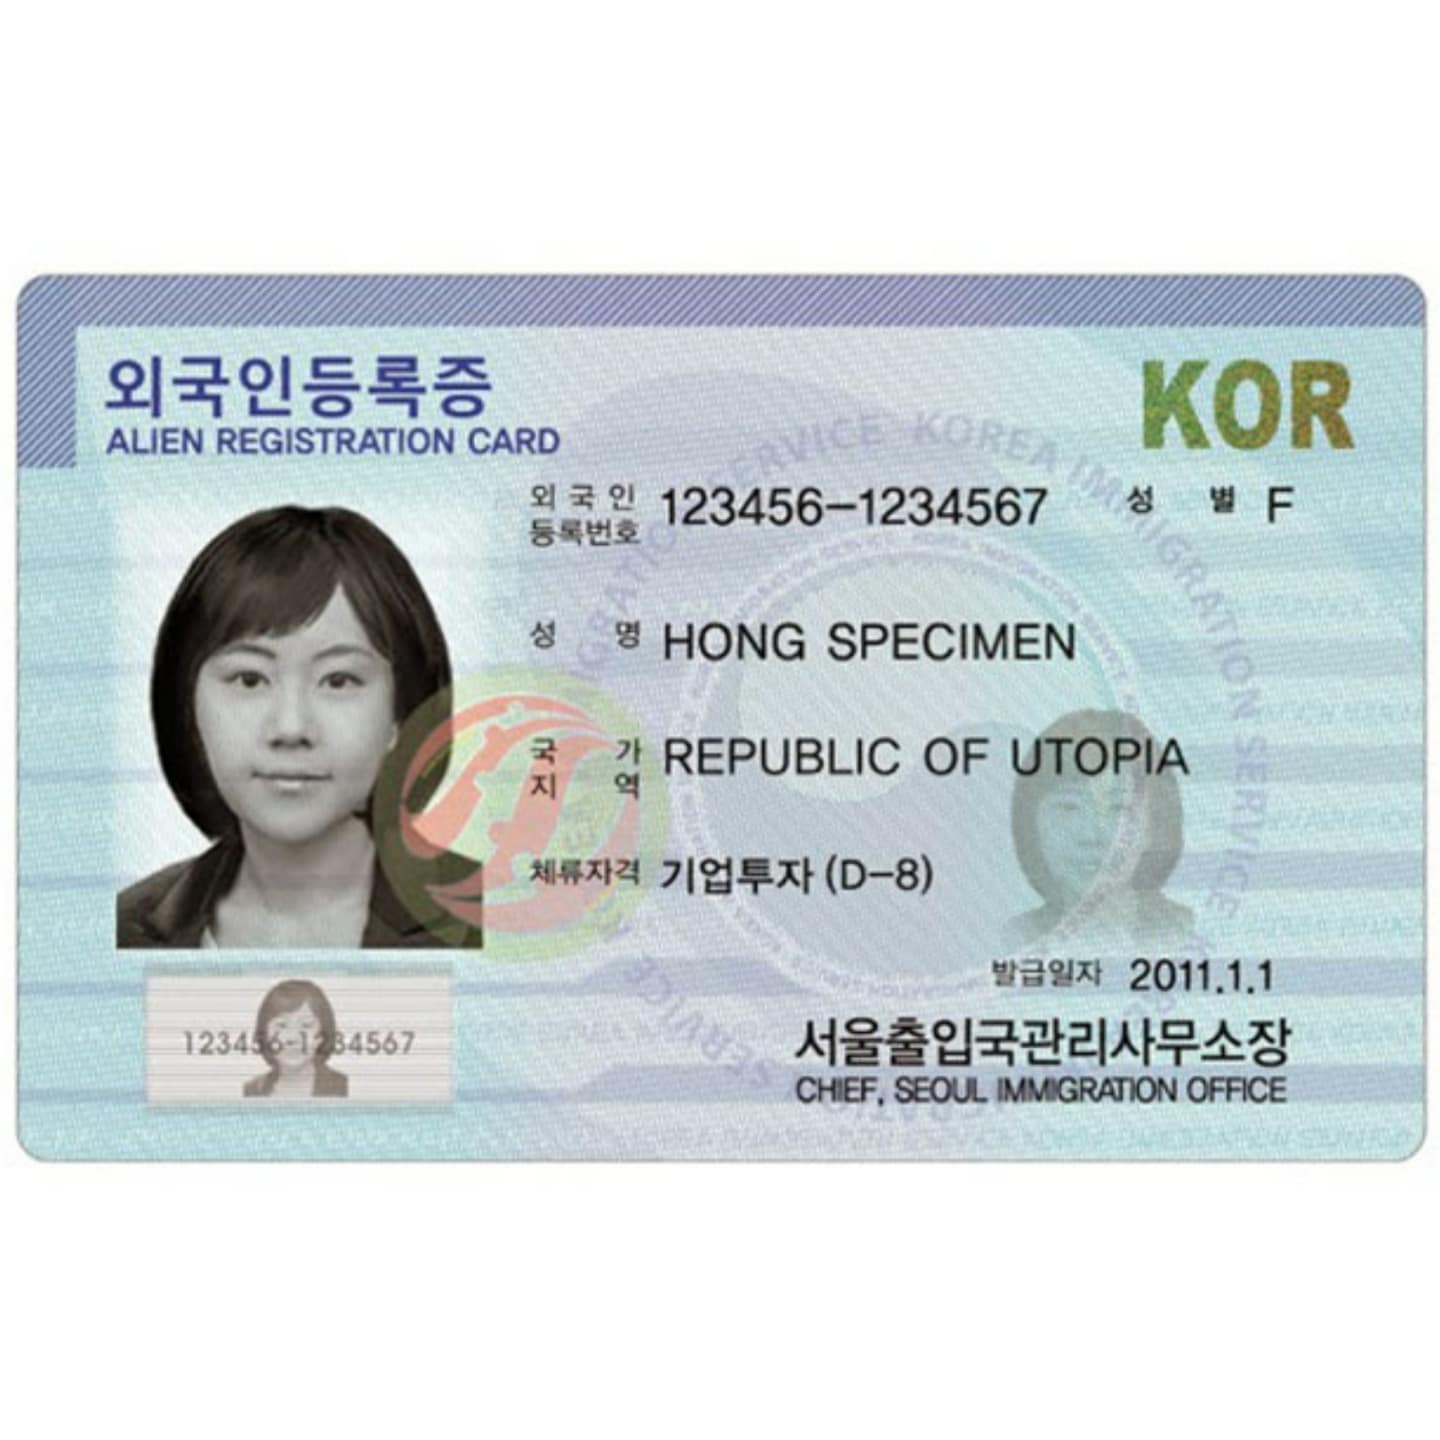 Your Complete Guide to Korea's Alien Registration Card